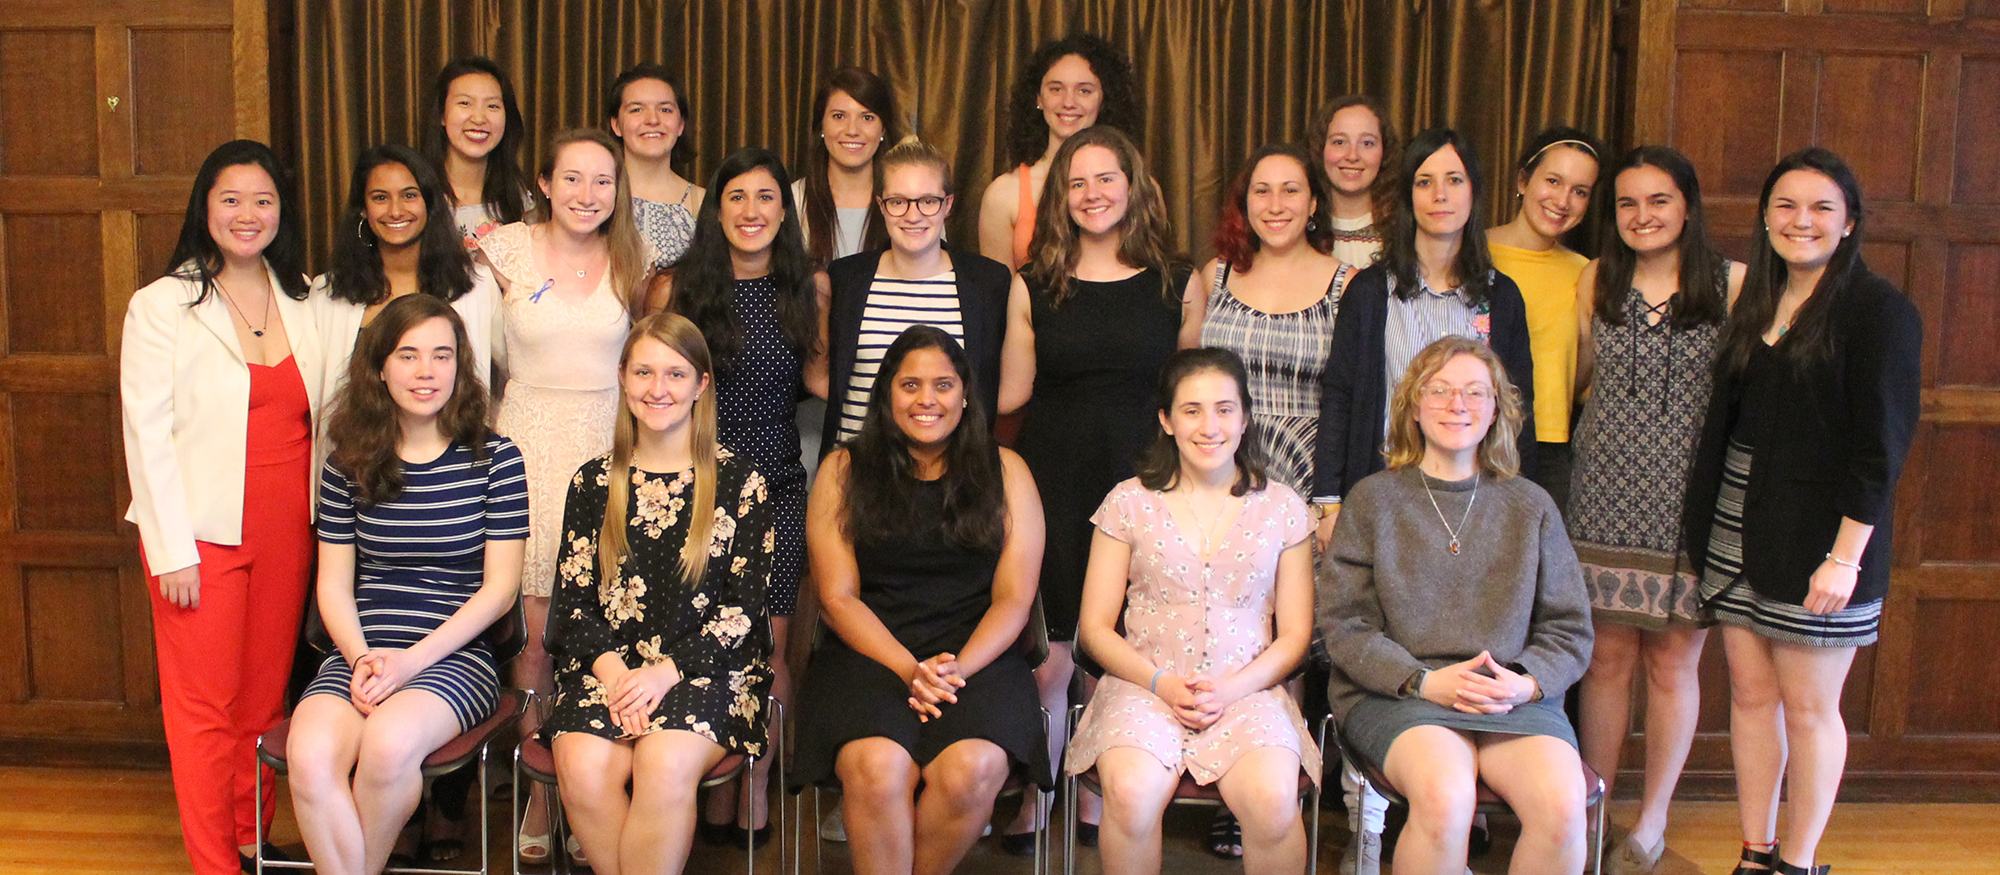 The 24 student-athletes honored as MHC Senior Scholar-Athletes at an awards ceremony on May 1st.